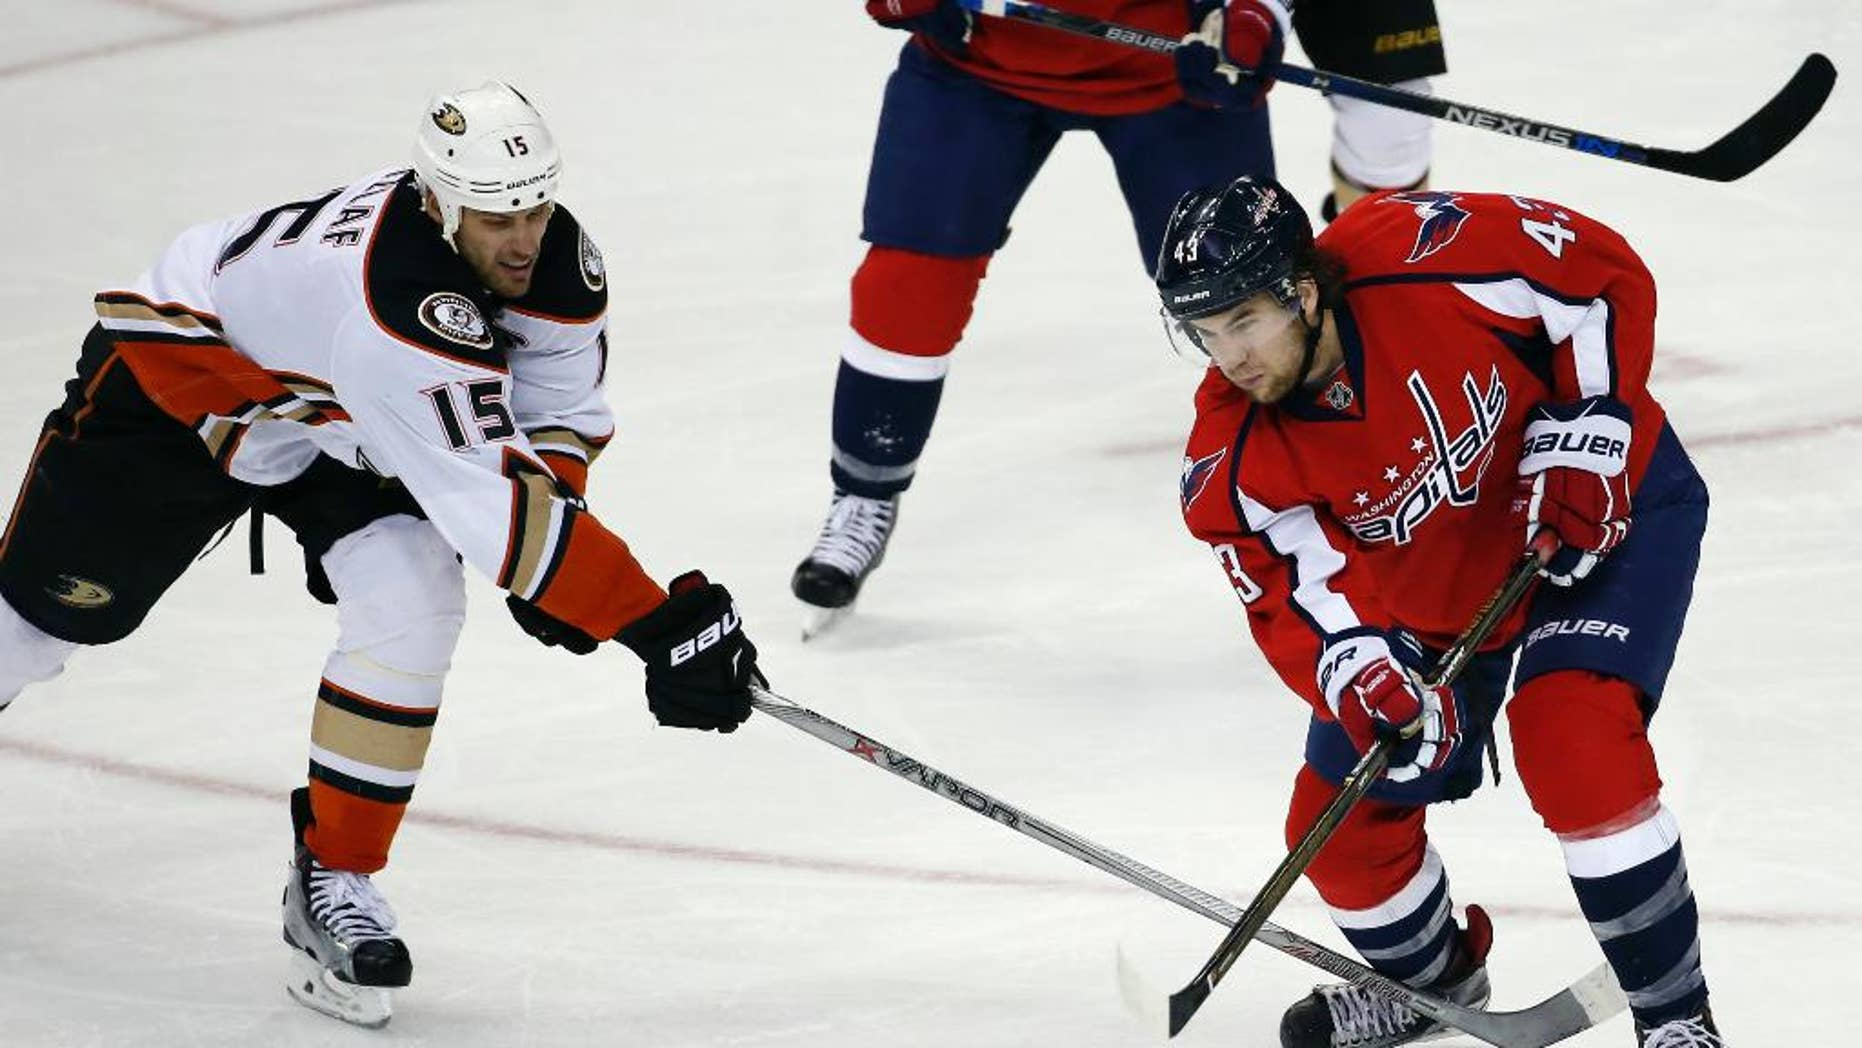 FILE - In this April 10, 2016 file photo, Washington Capitals right wing Tom Wilson (43) passes the puck as Anaheim Ducks center Ryan Getzlaf (15) defends during an NHL hockey game in Washington. Wilson's knee-on-knee hit on Pittsburgh's Conor Sheary cost him $2,404 in the form of a fine from the NHL, but the Washington Capitals forward escaped a suspension that could have altered the second-round playoff series against the Penguins.  (AP Photo/Alex Brandon, File)